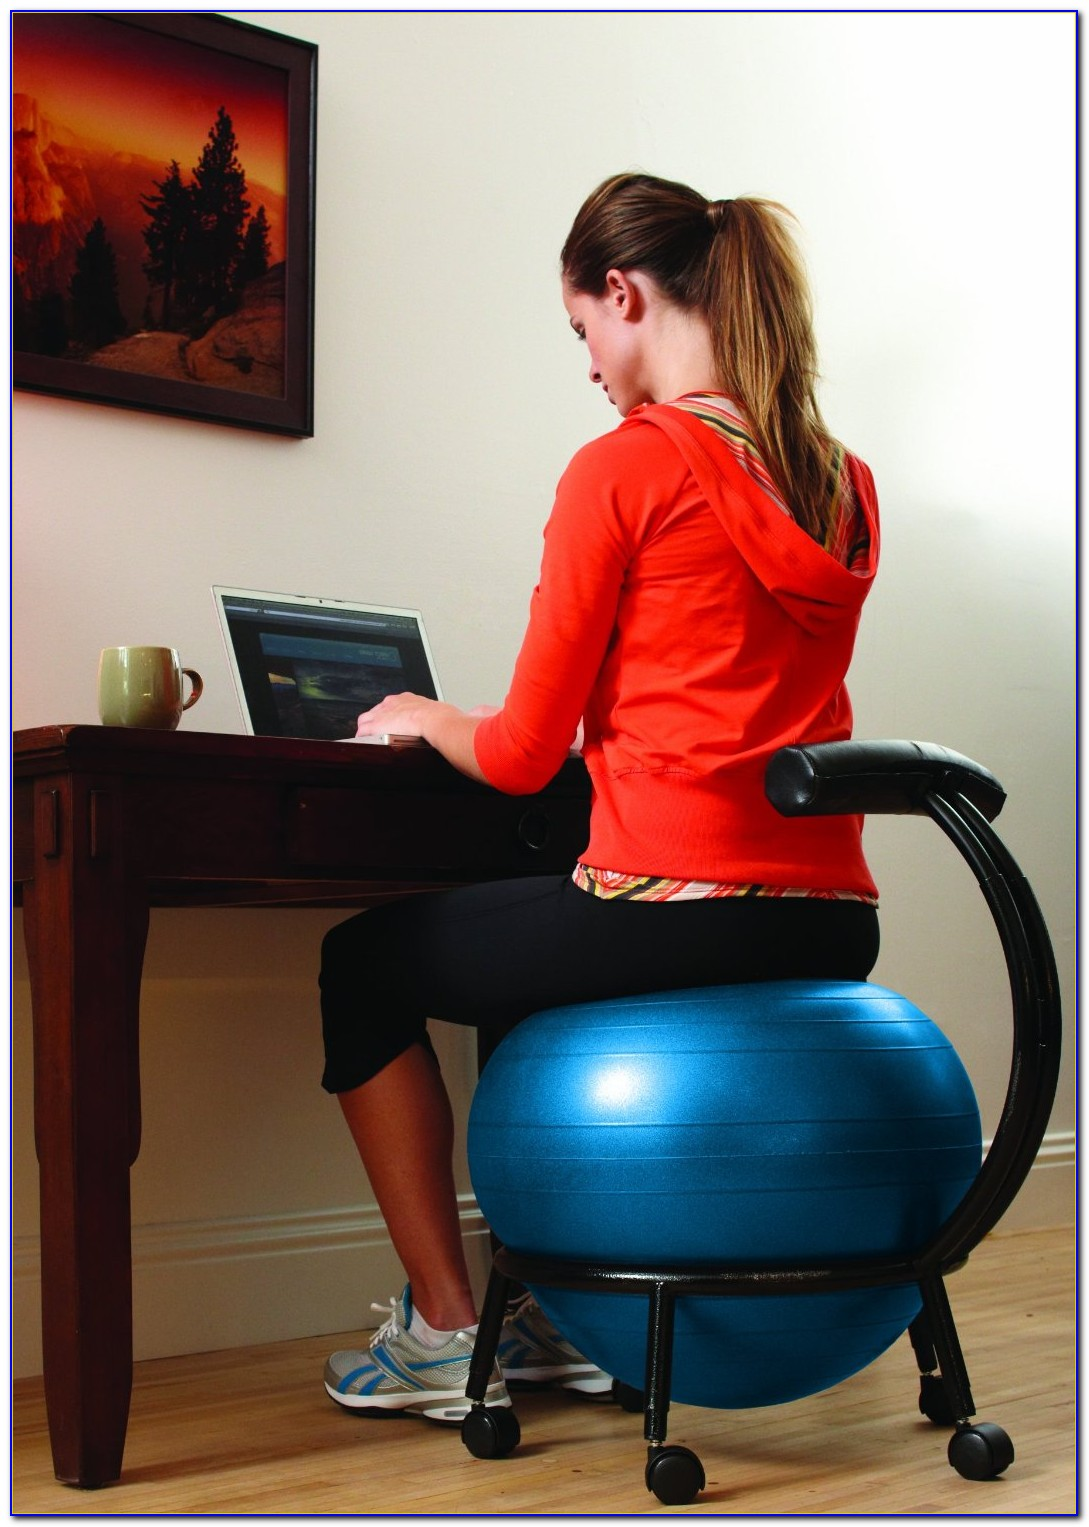 Office Chair Exercises Yoga Ball Desk Chair Exercises Desk Home Design Ideas